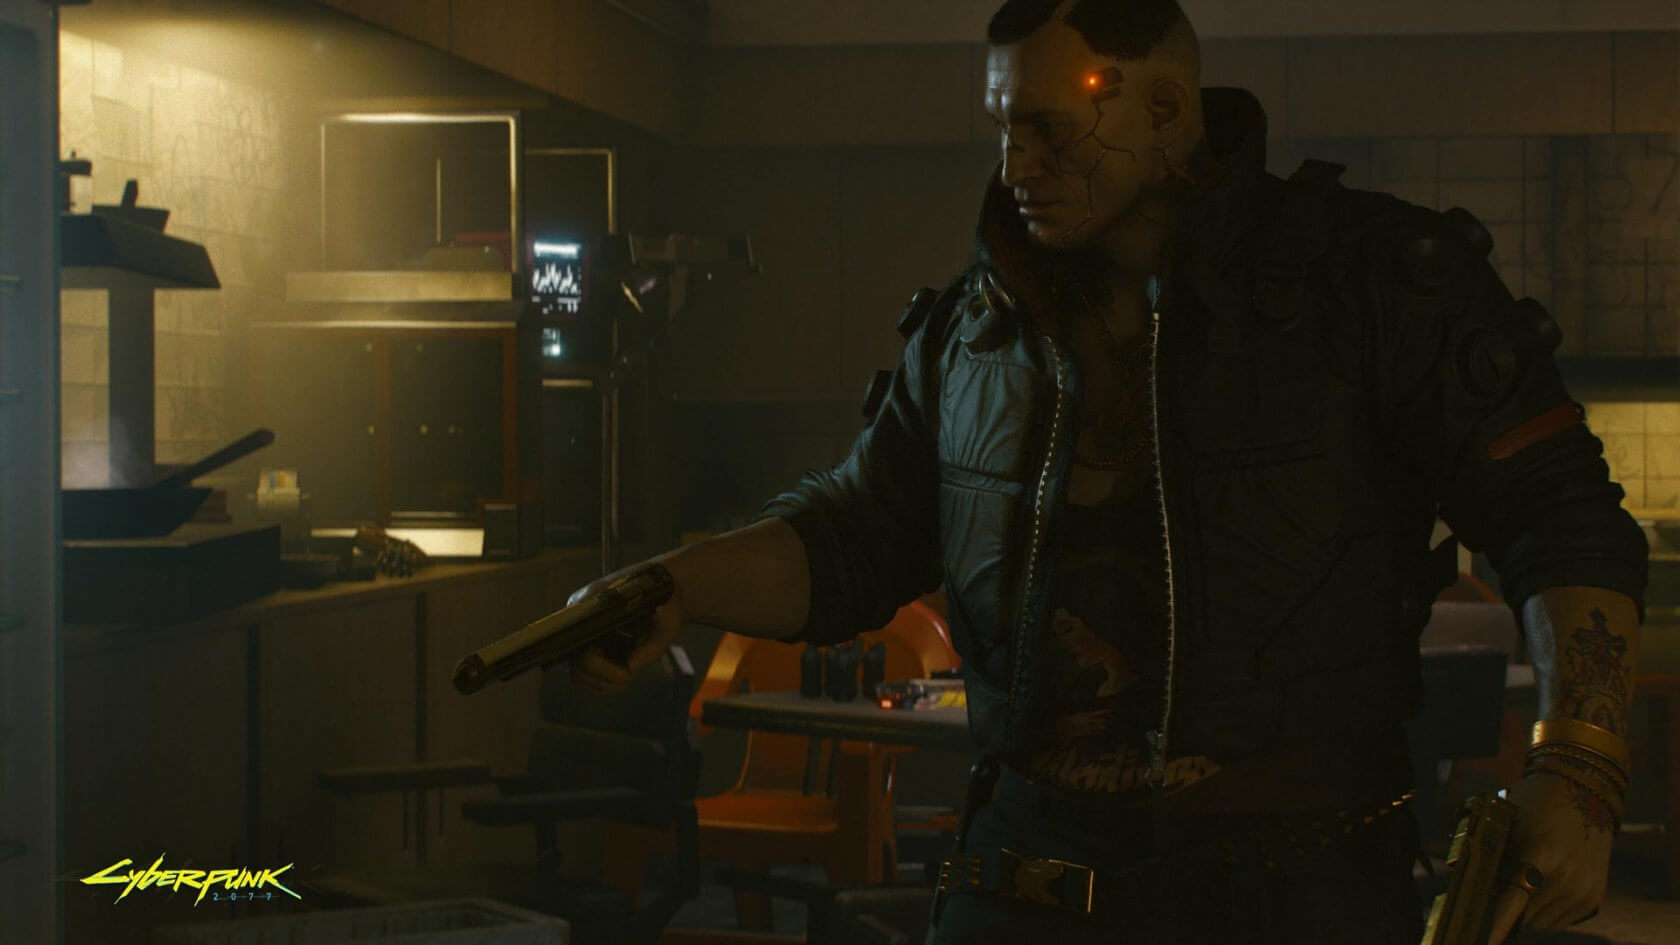 Cyberpunk 2077 gets April 2020 release date, check out the